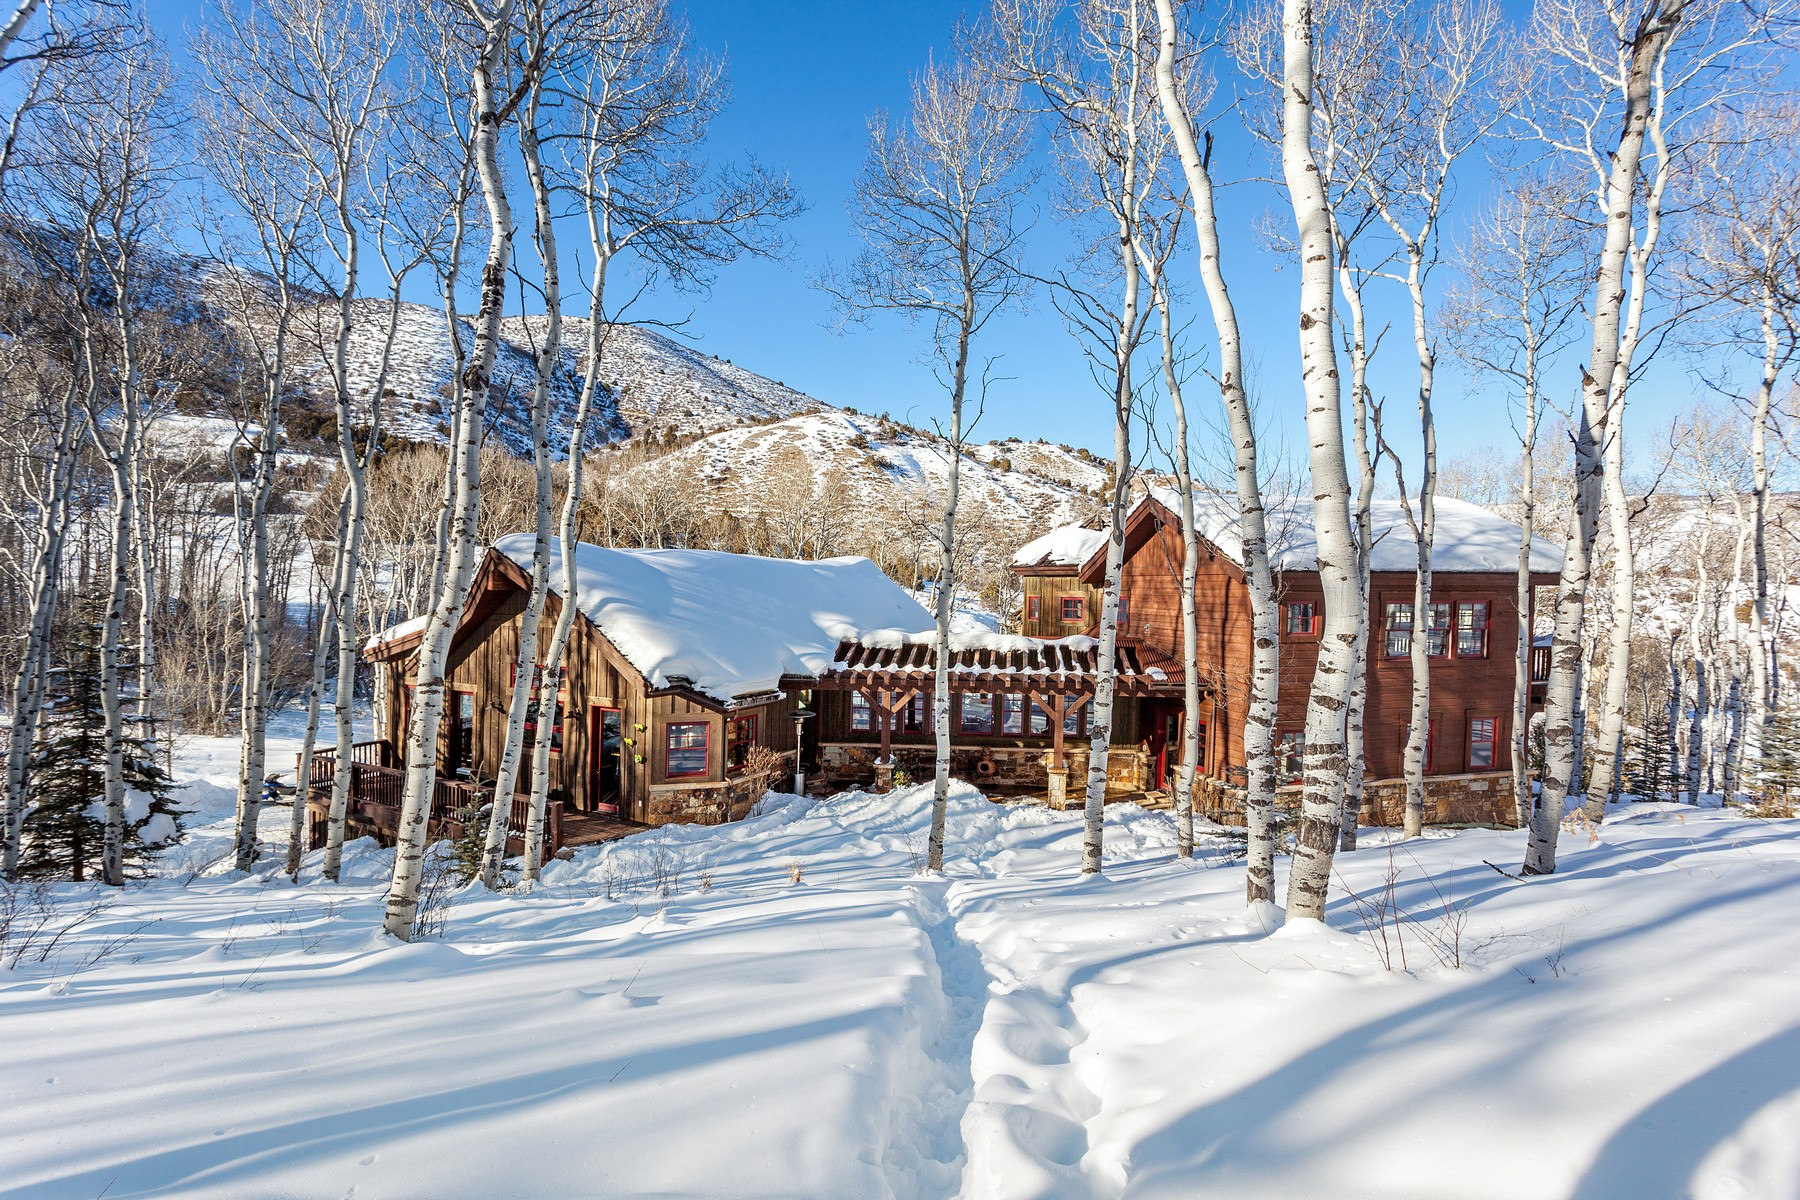 Single Family Home for Sale at Custom Home Nestled in Aspen Grove 124 Spring Place Edwards, Colorado, 81632 United States